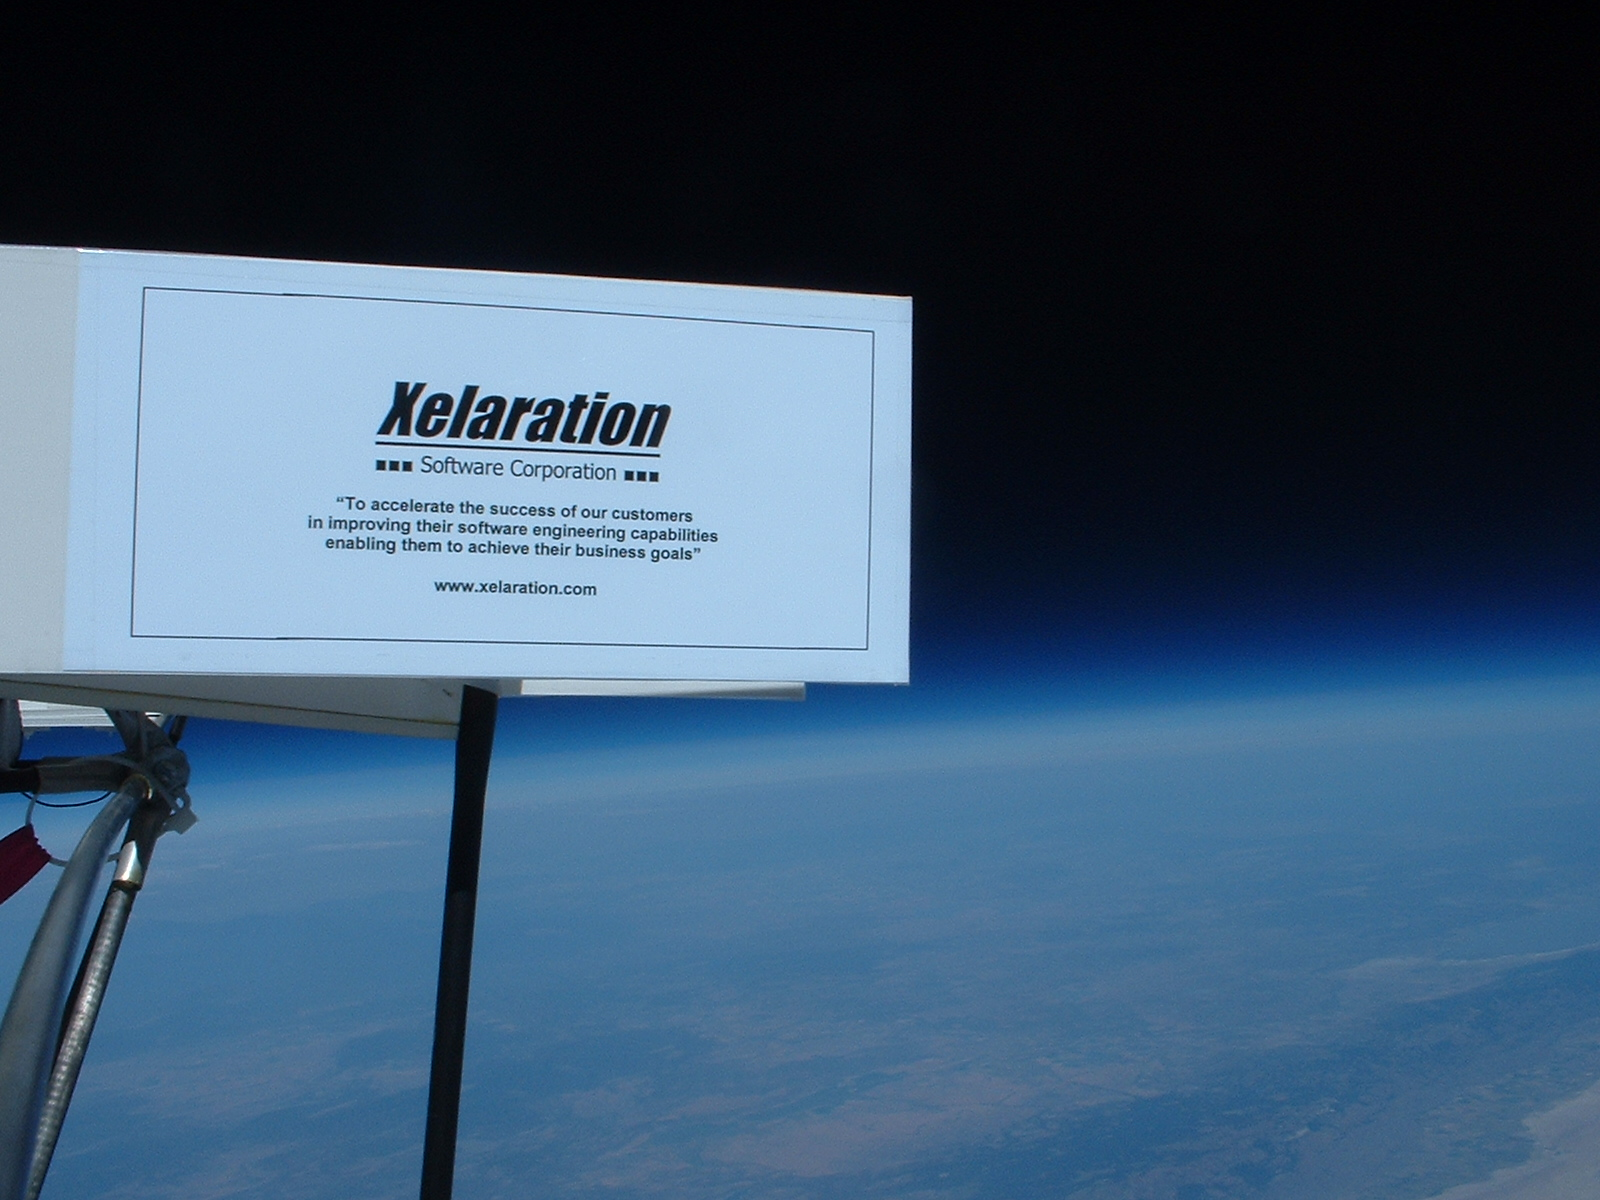 Xelaration at the Edge of Space